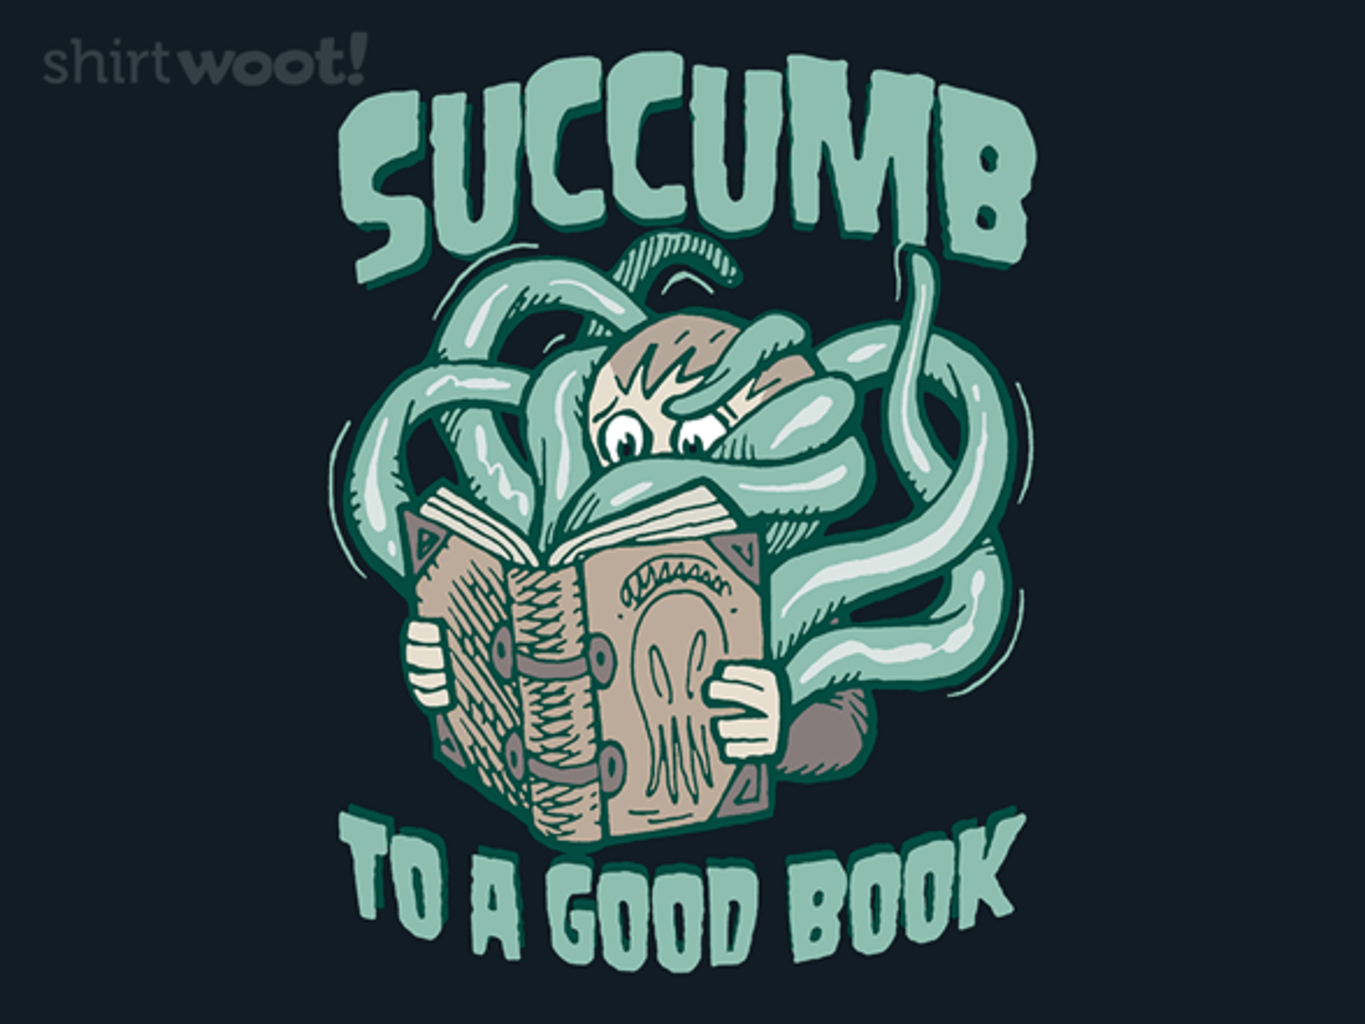 Woot!: Succumb to a Good Book